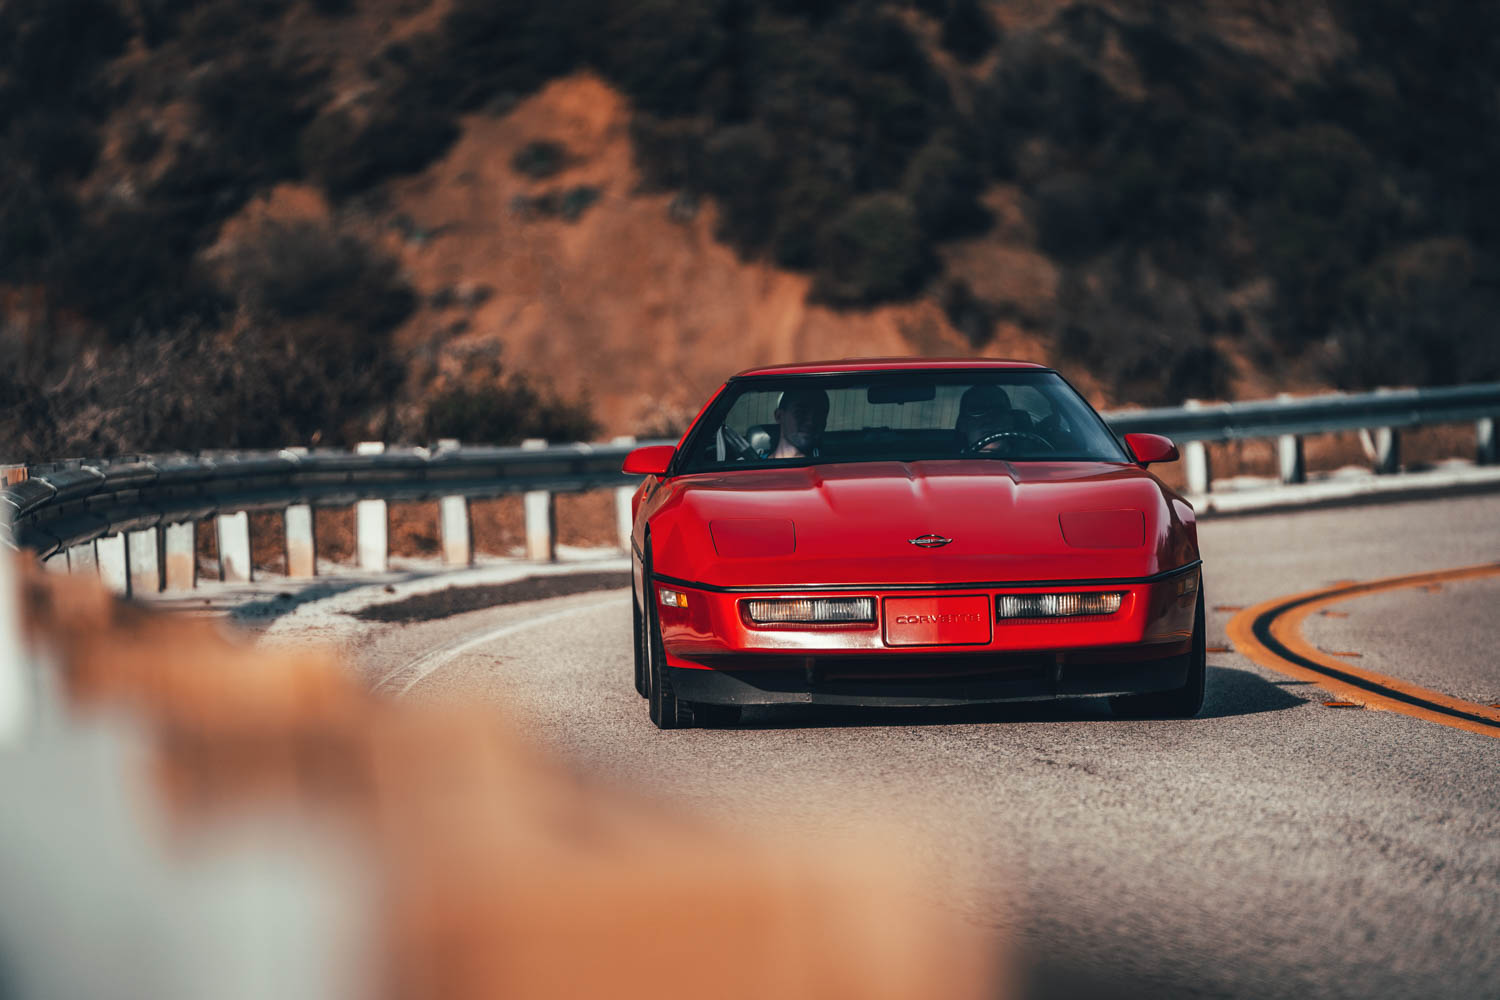 Out of the box, the C4 Corvette was a handler, thanks to new rack-and-pinion steering, low-profile radials, and vastly improved suspension geometry.